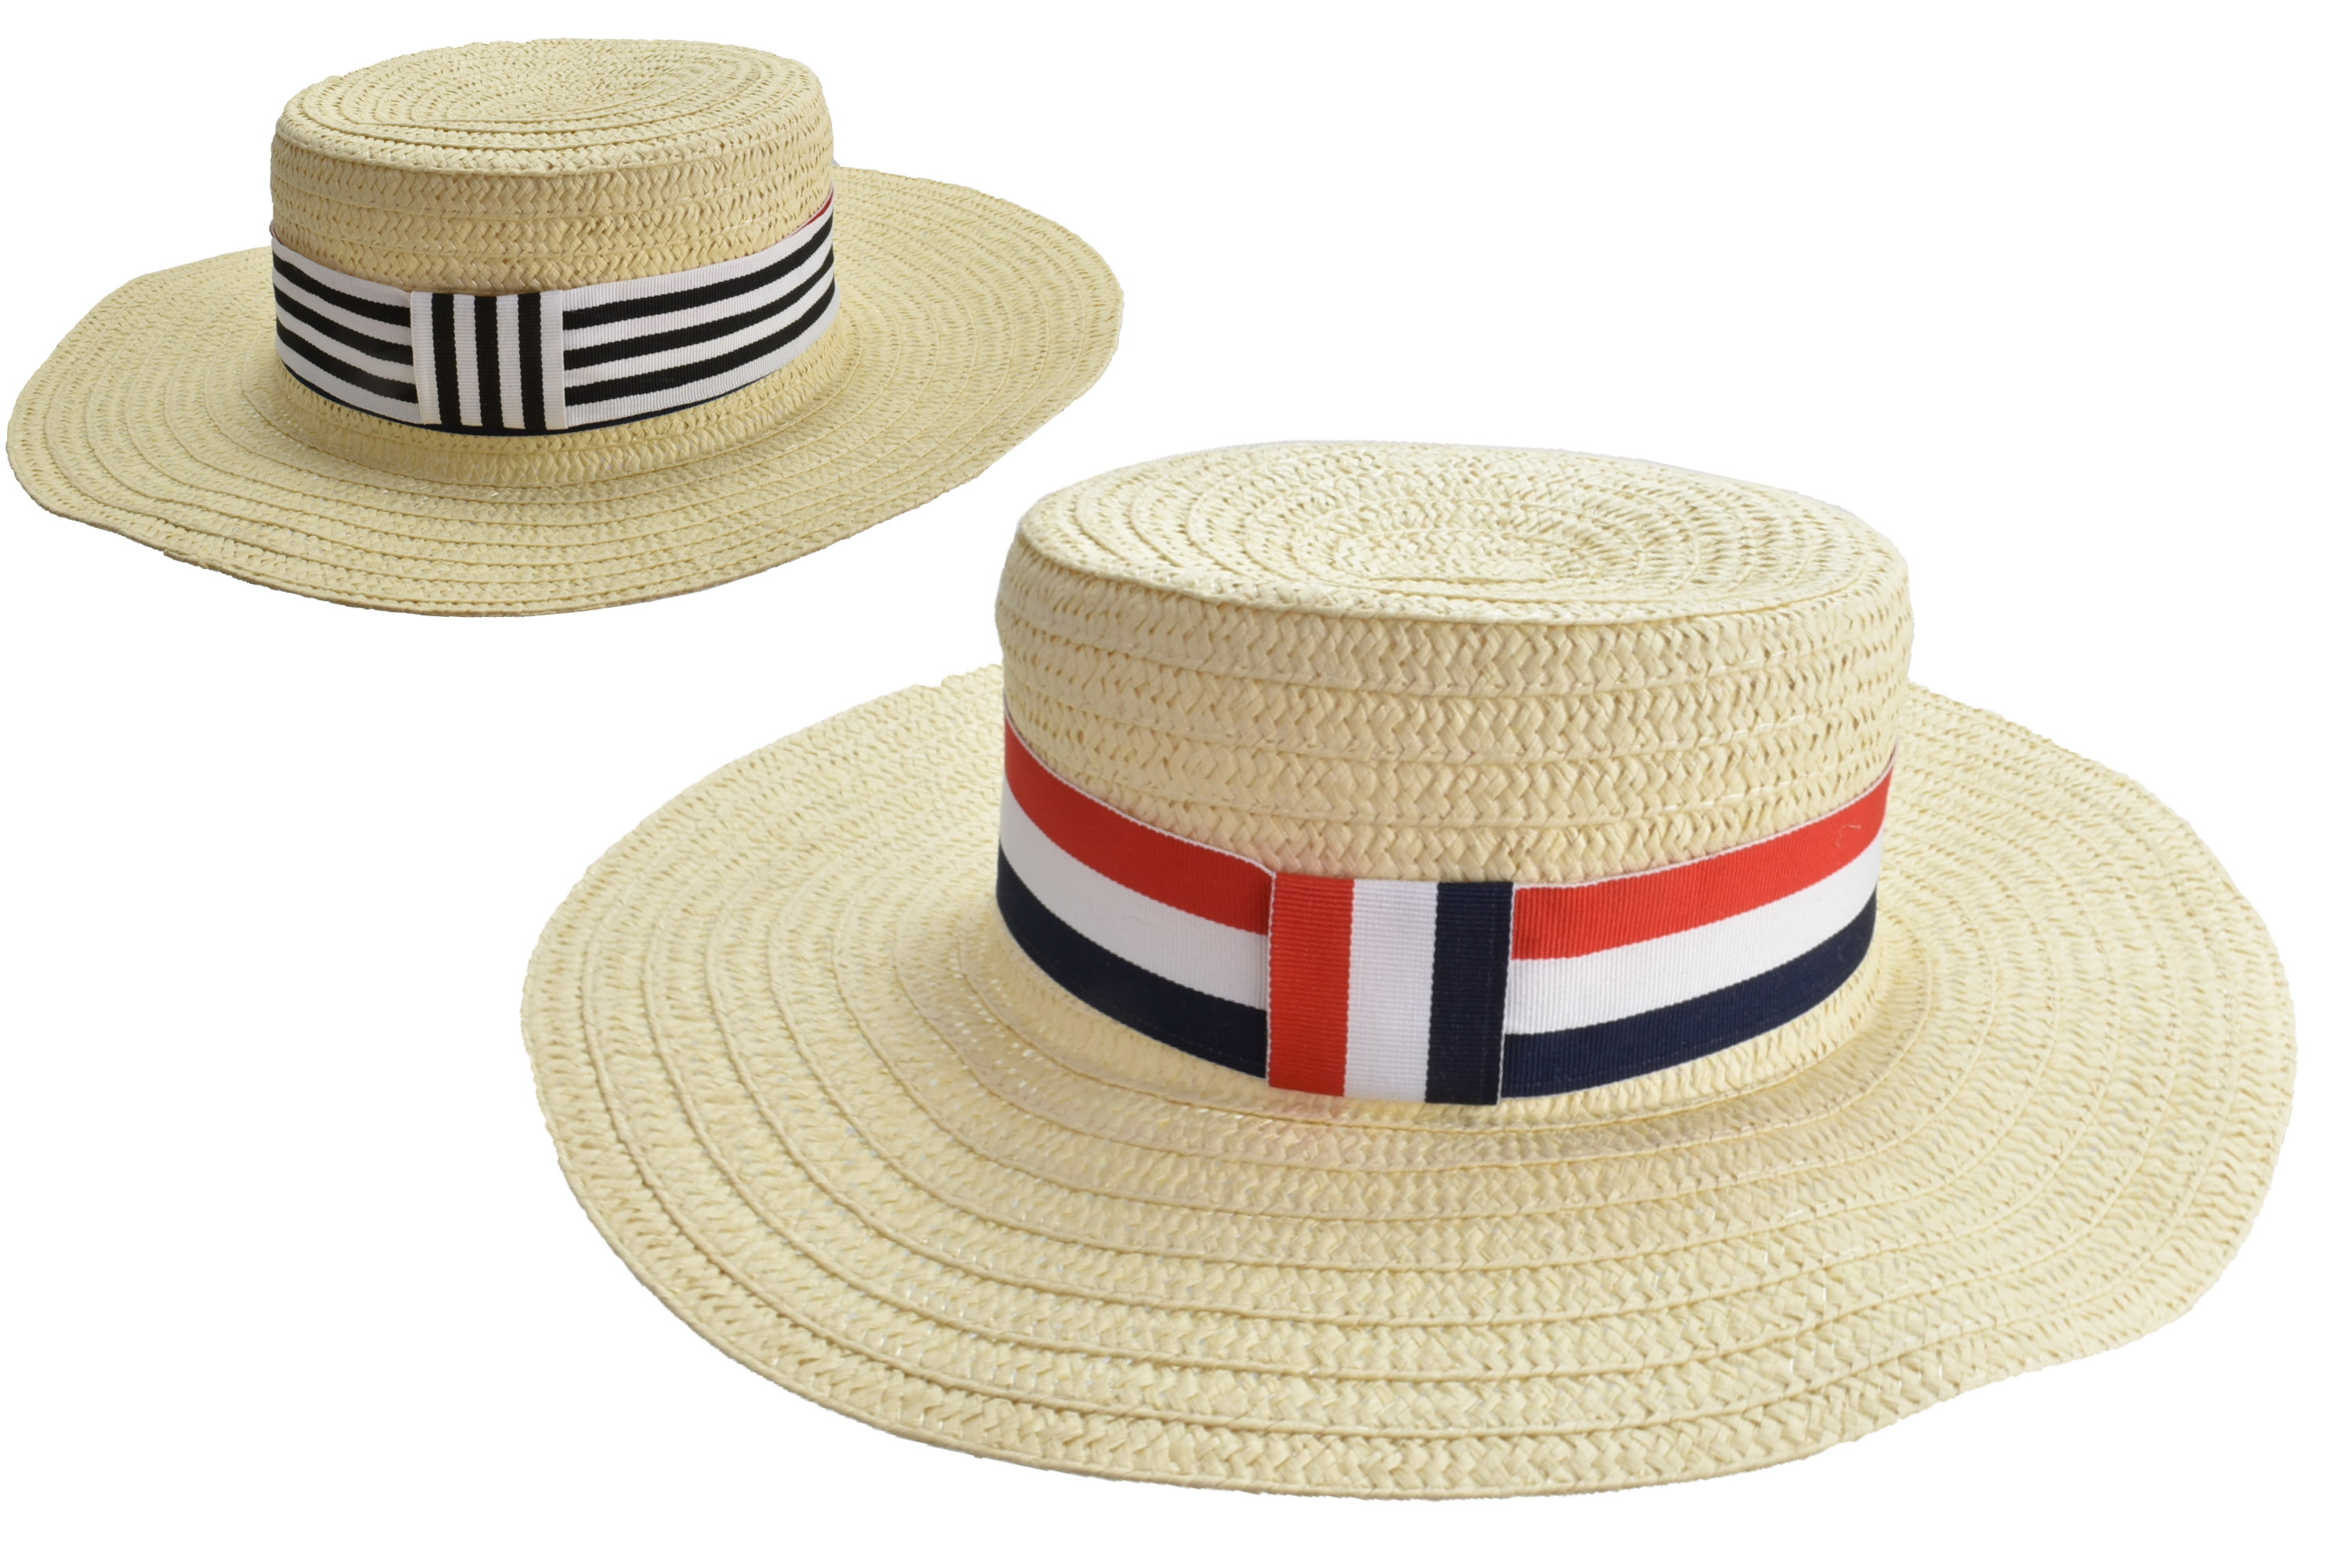 Adults Woven Wide Brim Hat 58cm 2 Assorted Colours